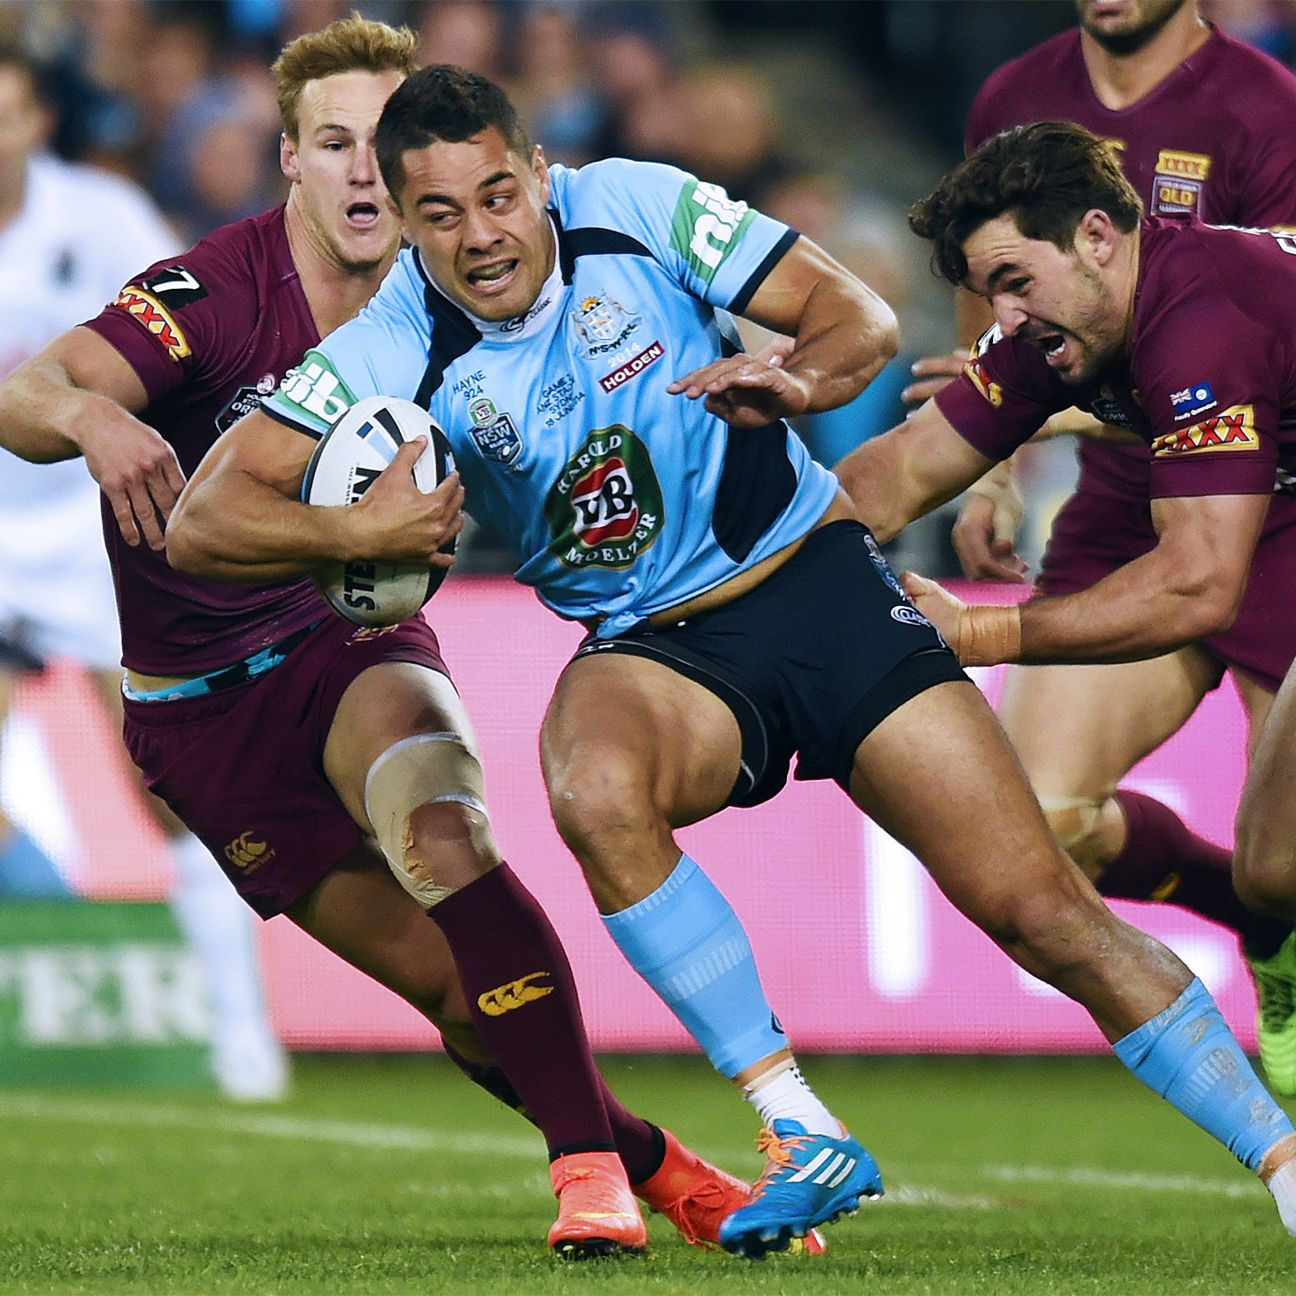 Green Rugby Player: Jarryd Hayne, Former Rugby League Player, Announces Intent